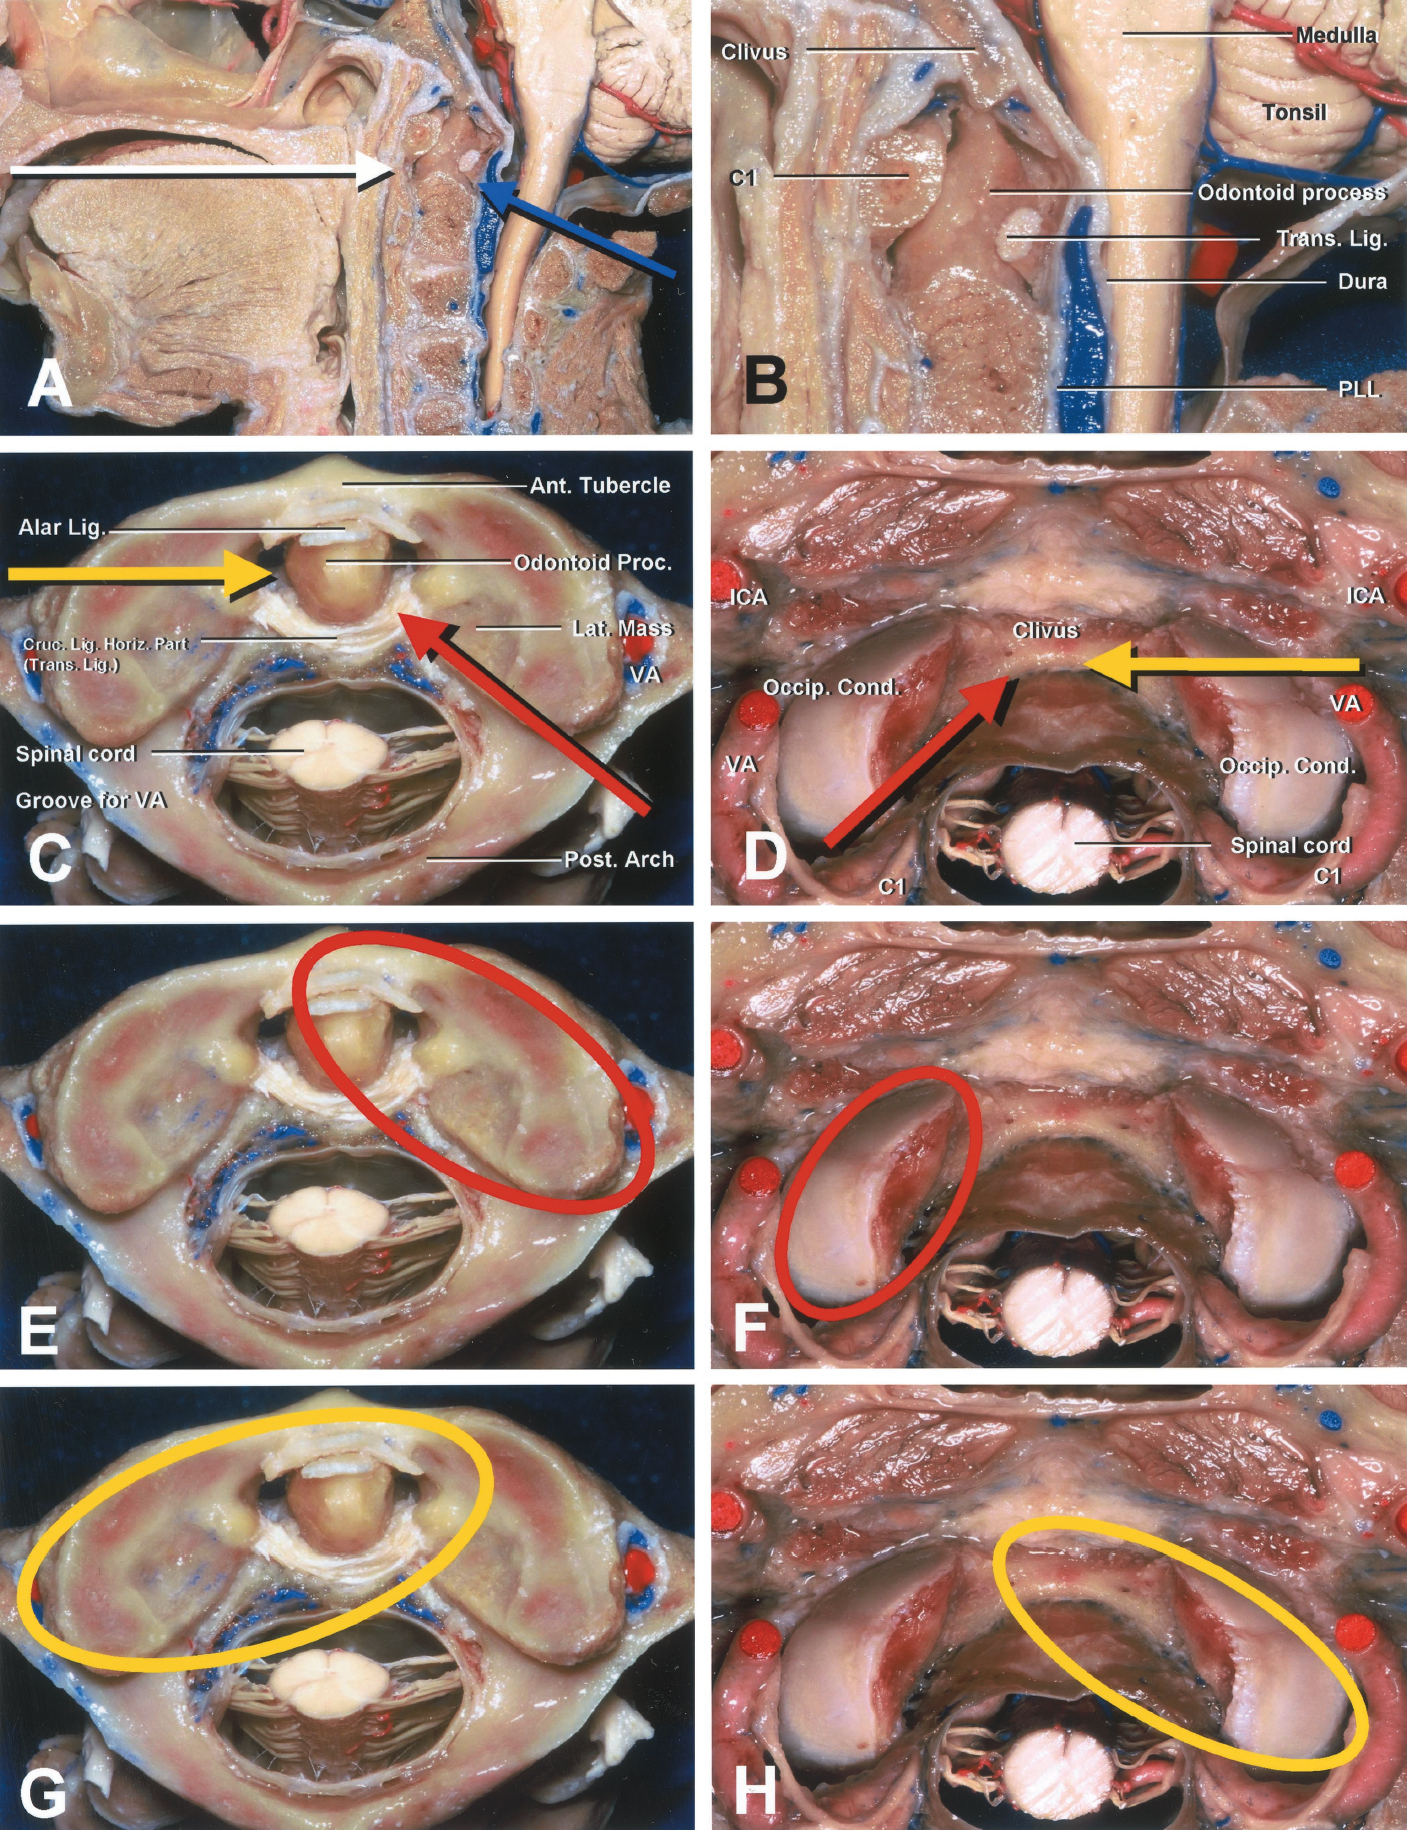 FIGURE 1.  Surgical approaches to an extradural lesion in the anterior aspect of the CVJ. A and B (enlarged view), anterior transoral approach (white arrow) and posterior, far lateral, and extreme lateral approaches (blue arrow). The atlanto-occipital transarticular approaches to anterior extradural lesions of the CVJ are shown in the remaining panels. C, E, and G, superior views of the upper surface of the atlas. D, F, and H, inferior views of the occipital bone and foramen magnum. A and B, The extradural region of the anterior aspect of the CVJ consists of the occipital bone, atlas, axis, and its related articulations and ligaments. C and D, direction of the right far lateral (red arrows) and left extreme lateral (yellow arrows) atlanto-occipital transarticular approaches. E and F, the far lateral atlantooccipital transarticular approach provides access to the anterior or anterolateral aspects of the CVJ, including the odontoid process and the ipsilateral lower clivus. The red circled area indicates the extent of the drilling of the atlantal condyle and odontoid process (E) and occipital condyle (F). G and H, the extreme lateral atlanto-occipital transarticular approach proceeds to the anterior aspect of the CVJ, including the dens, lower clivus, and medial surface of the contralateral atlanto-occipital joint from the lateral perspective. The yellow circled area indicates the extent of the drilling of the atlantal condyle and odontoid process (G) and occipital condyle (H). Ant., anterior; Cond., condyle; Cruc., cruciform; Horiz., horizontal; ICA, internal carotid artery; Lat., lateral; Lig., ligament; Occip., occipital; Post., posterior; Proc., process; PLL, posterior longitudinal ligament; Trans., transverse; VA, vertebral artery. (Images courtesy of AL Rhoton, Jr.)